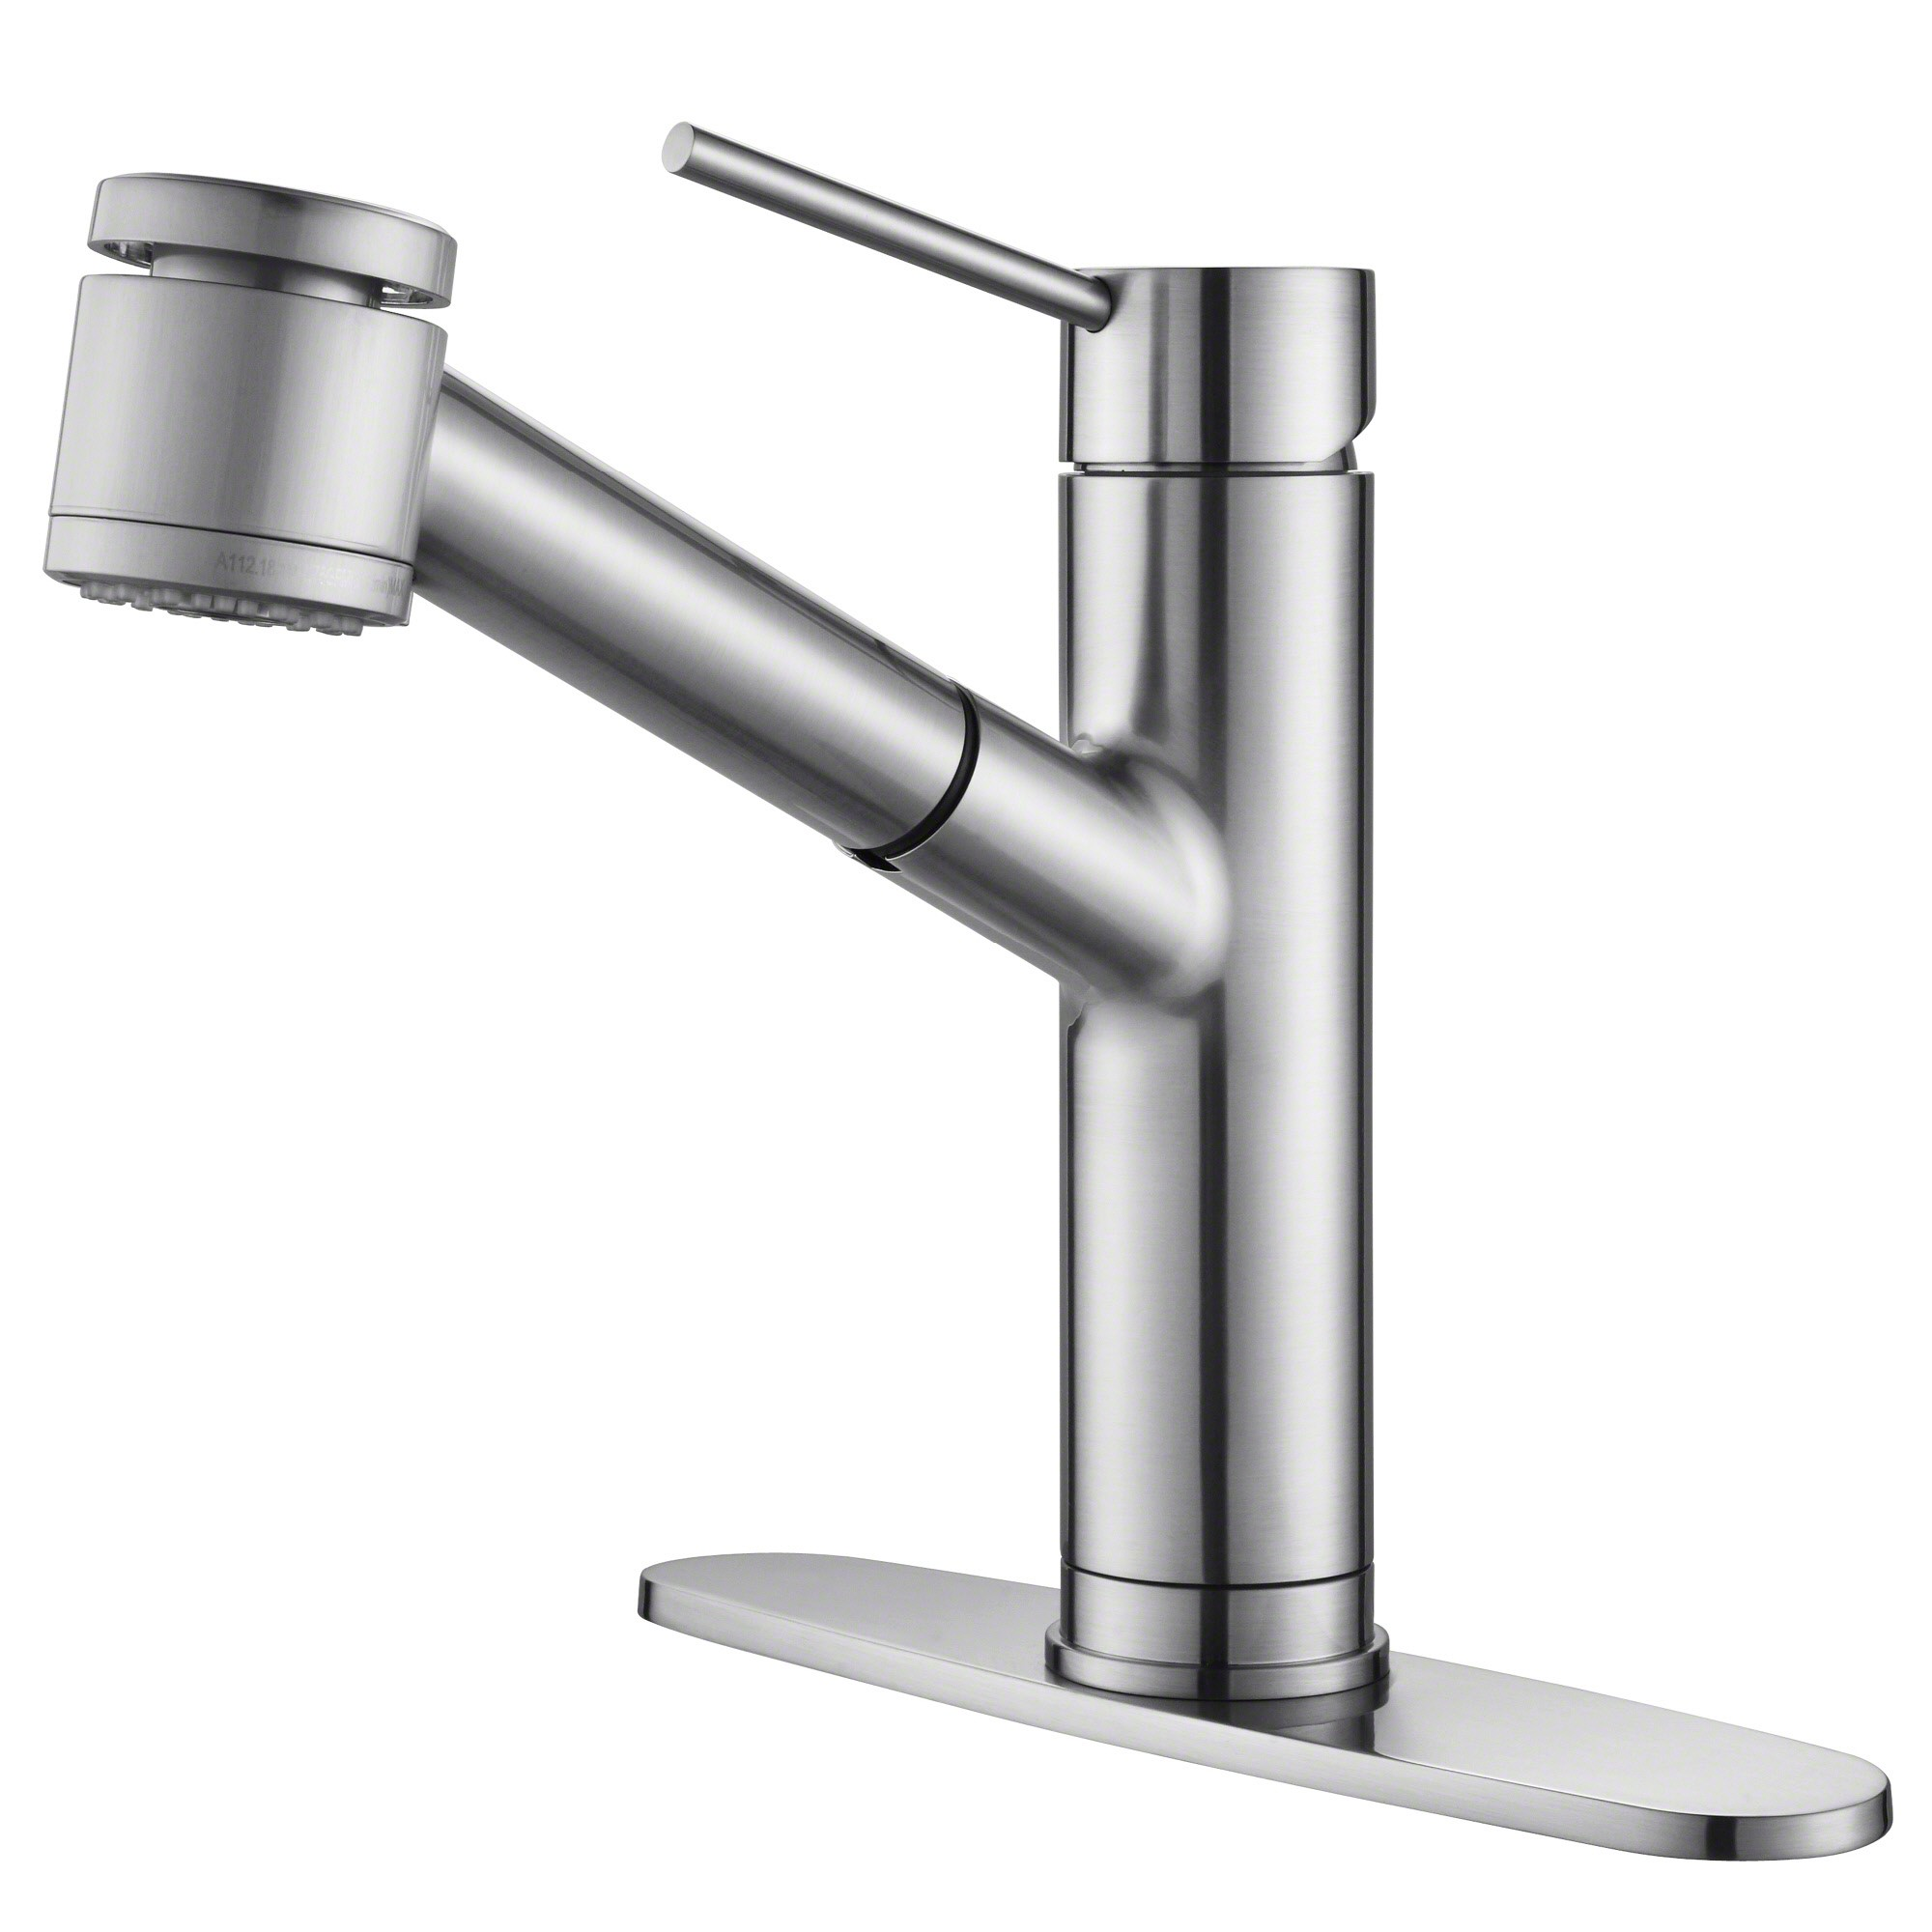 Kraus oletto single handle spot free stainless steel pull out kitchen faucet